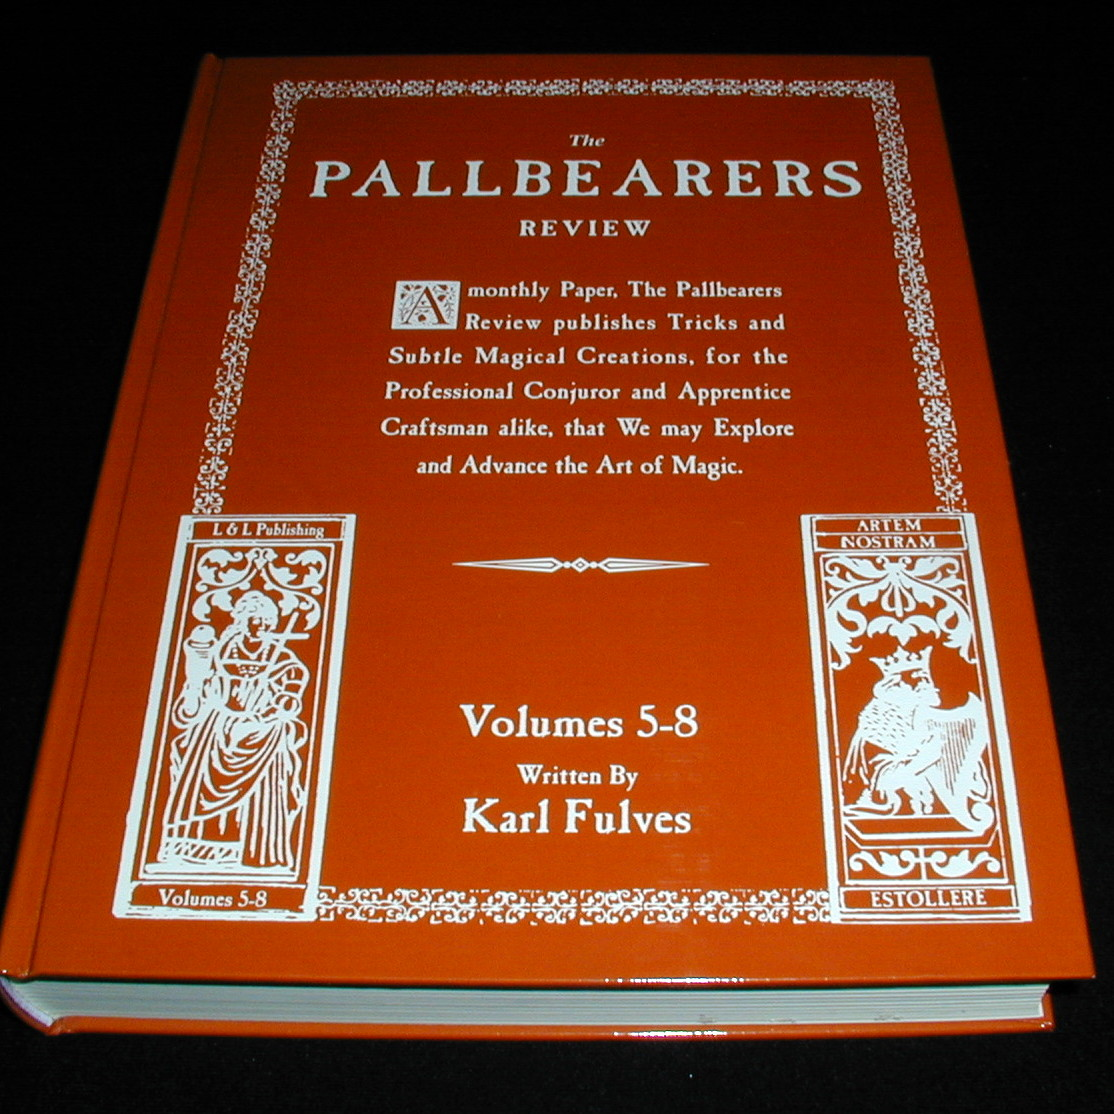 Karl Fulves - Pallbearers Review (5-8)